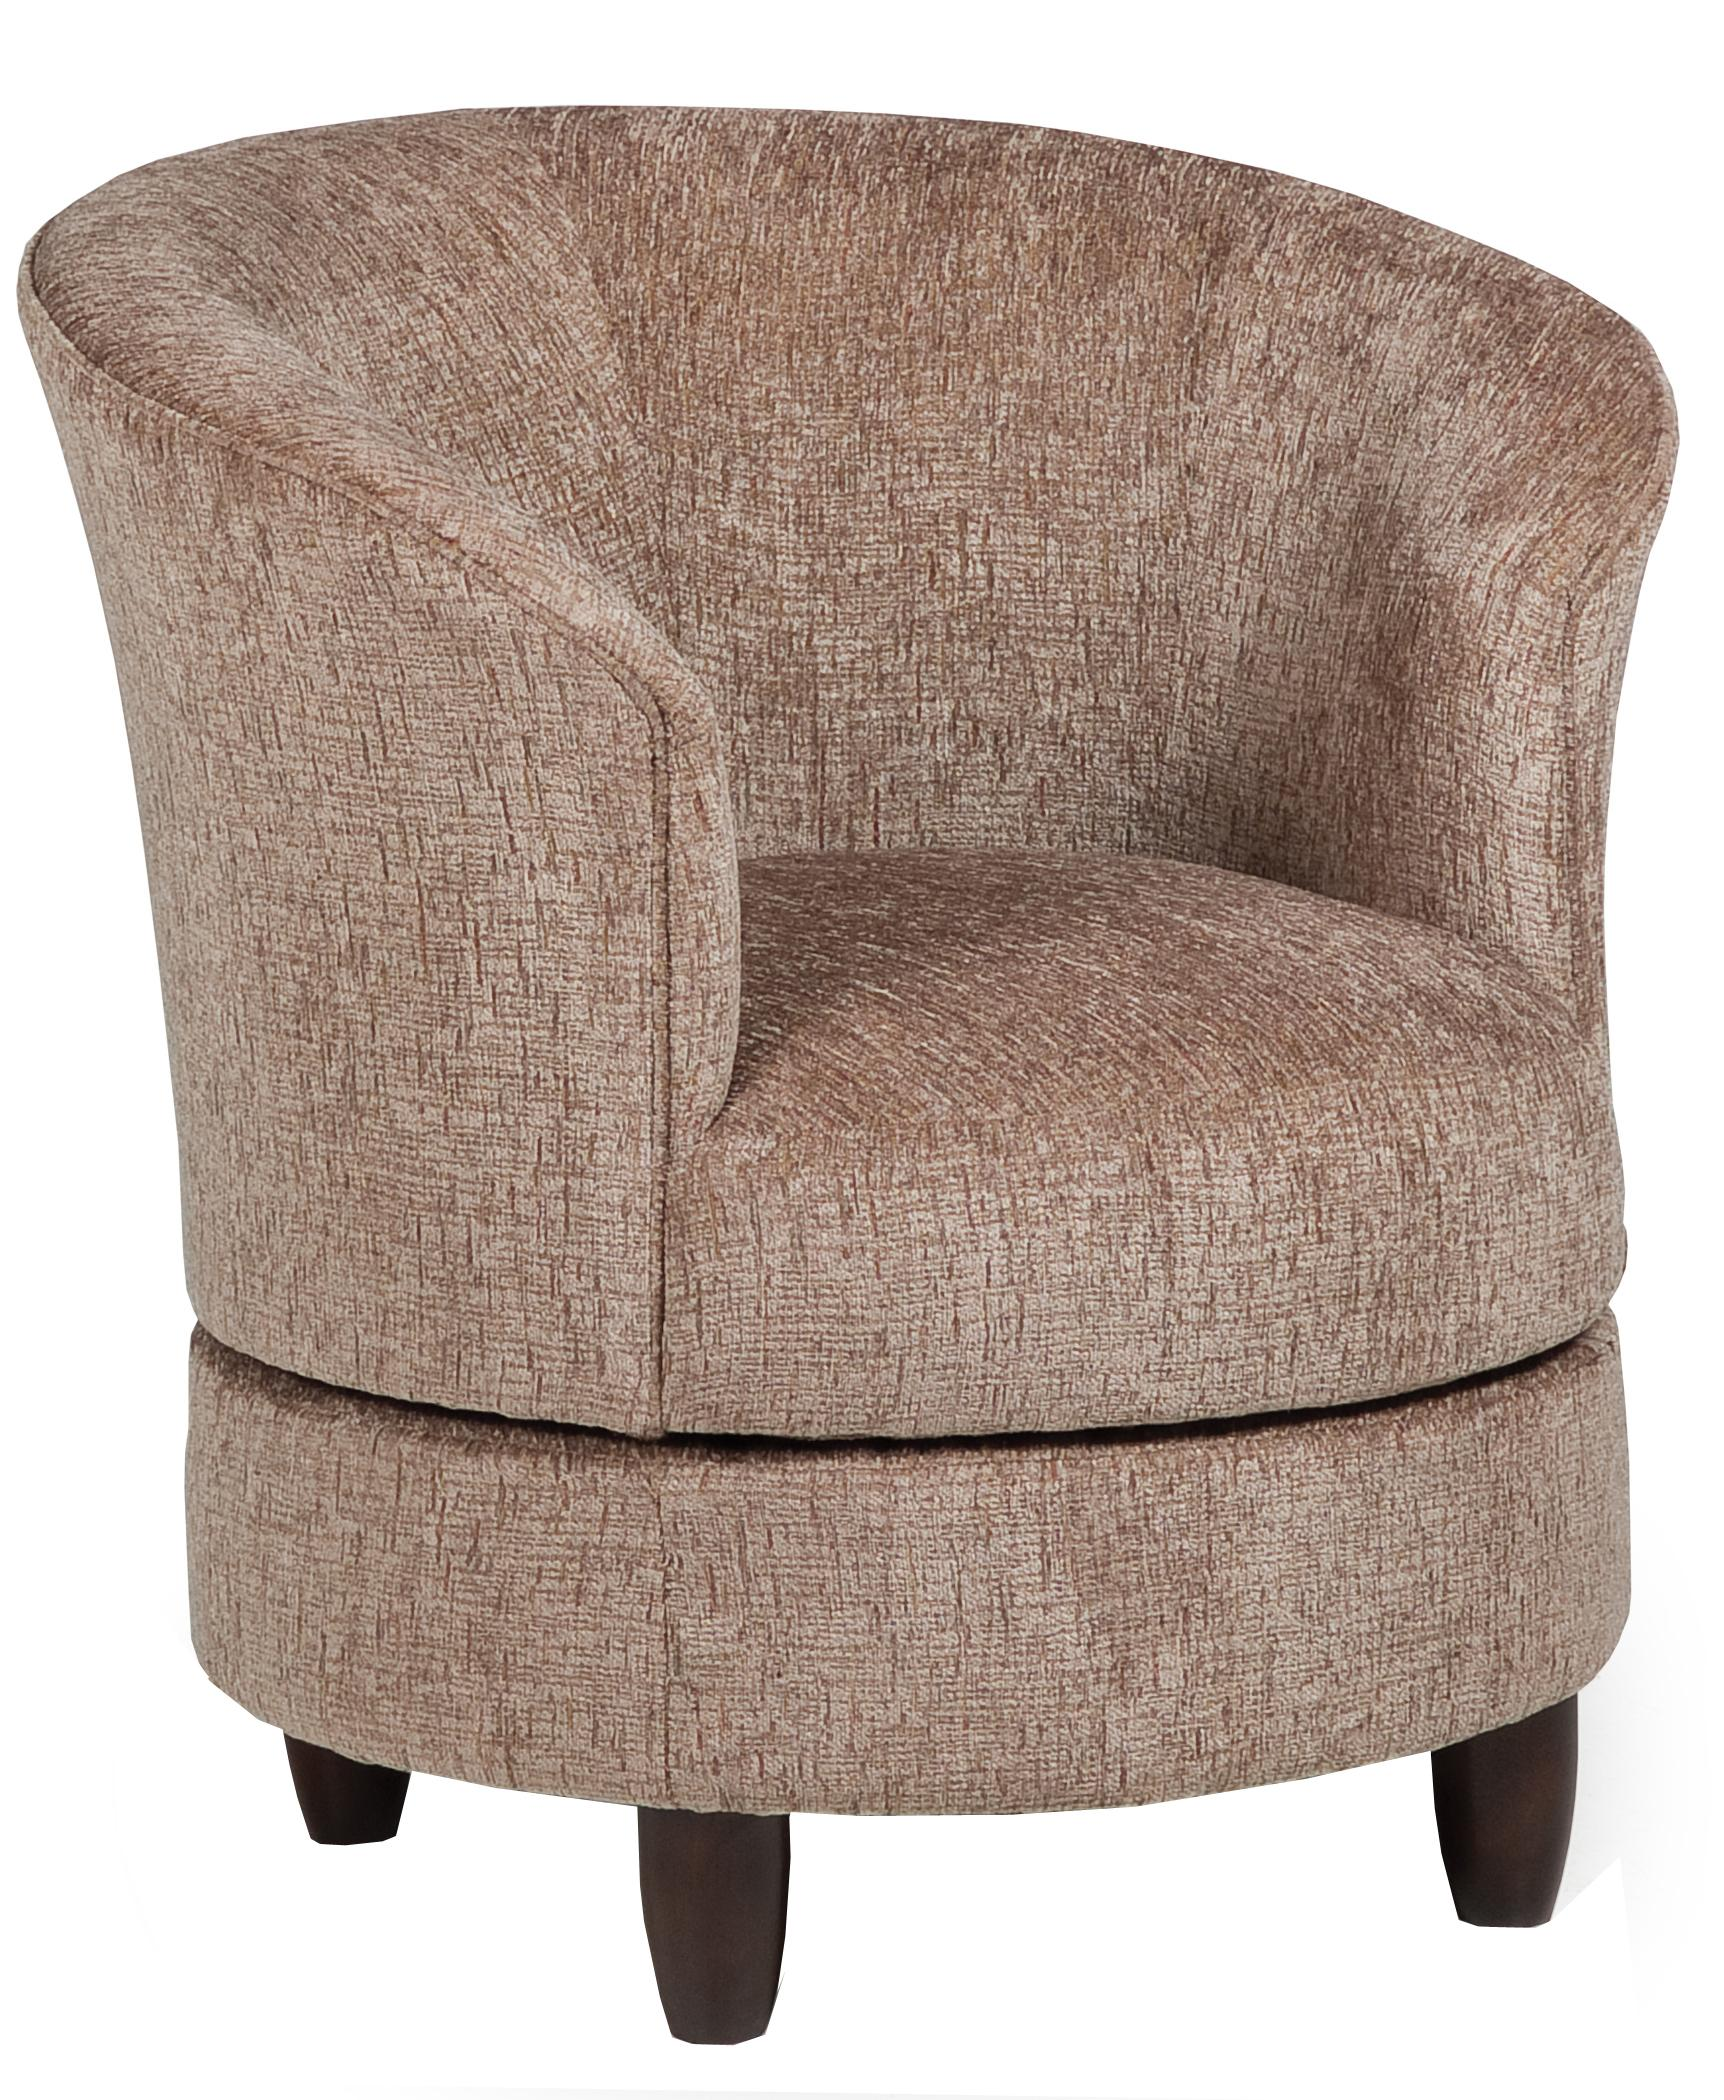 Best Home Furnishings Accent Chairs Swivel Barrel Chair | Turk Furniture | Upholstered Chairs Joliet La Salle Kankakee Plainfield Bourbonnais Ottawa ...  sc 1 st  Turk Furniture & Best Home Furnishings Accent Chairs Swivel Barrel Chair | Turk ...